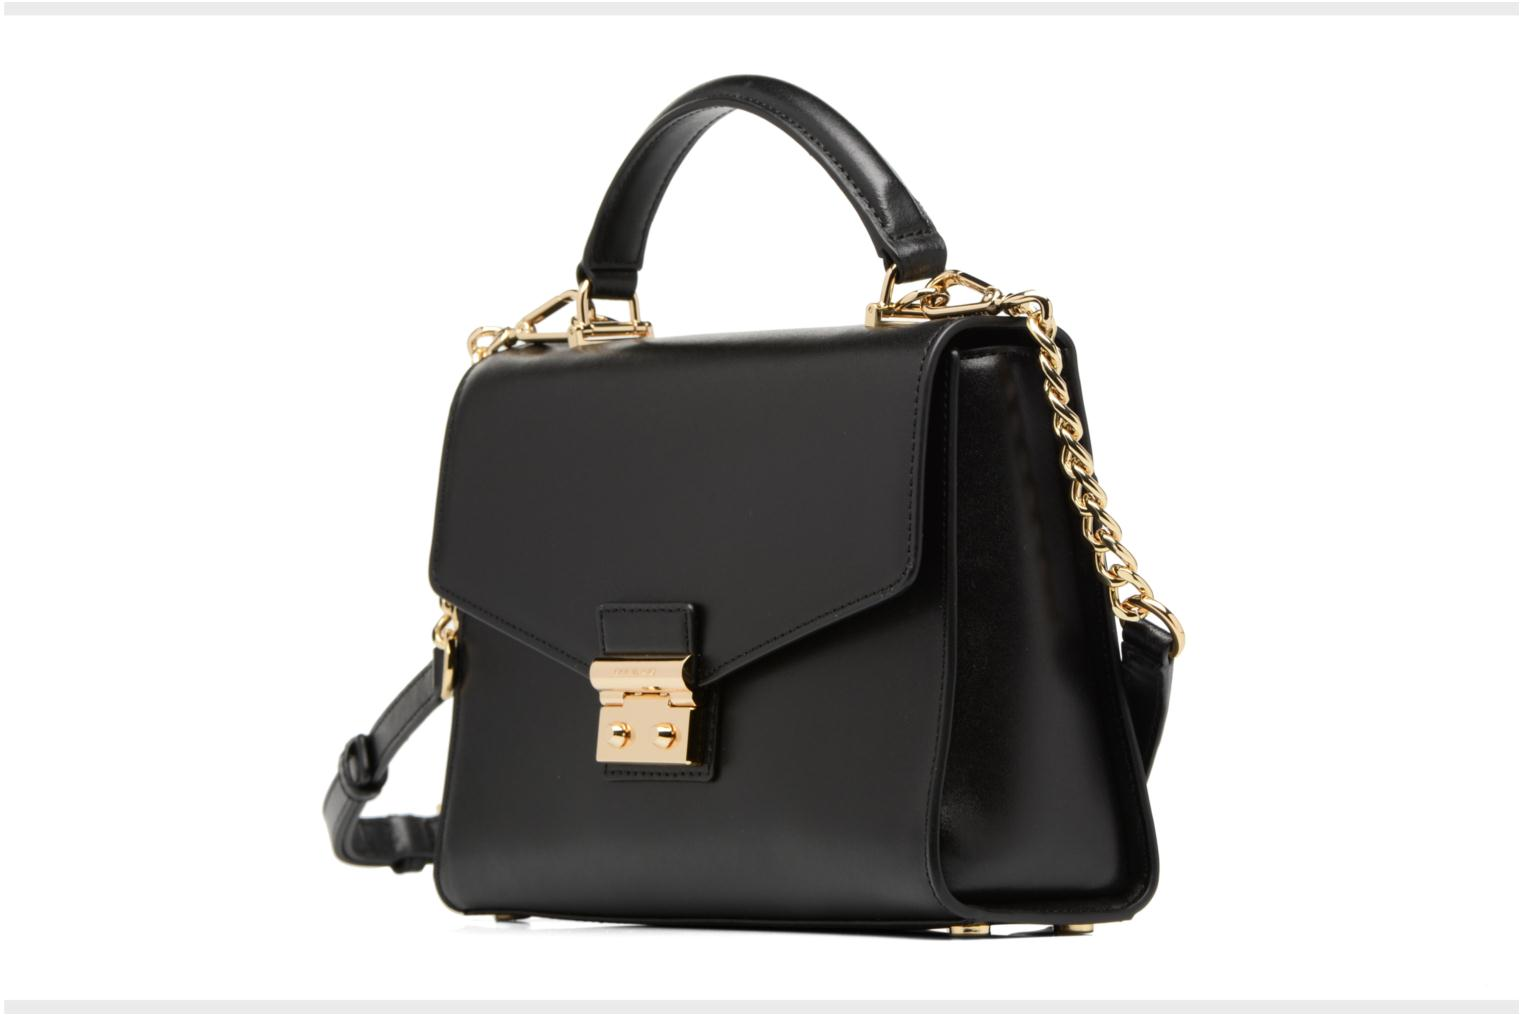 SLOAN MD TH SATCHEL 001 black